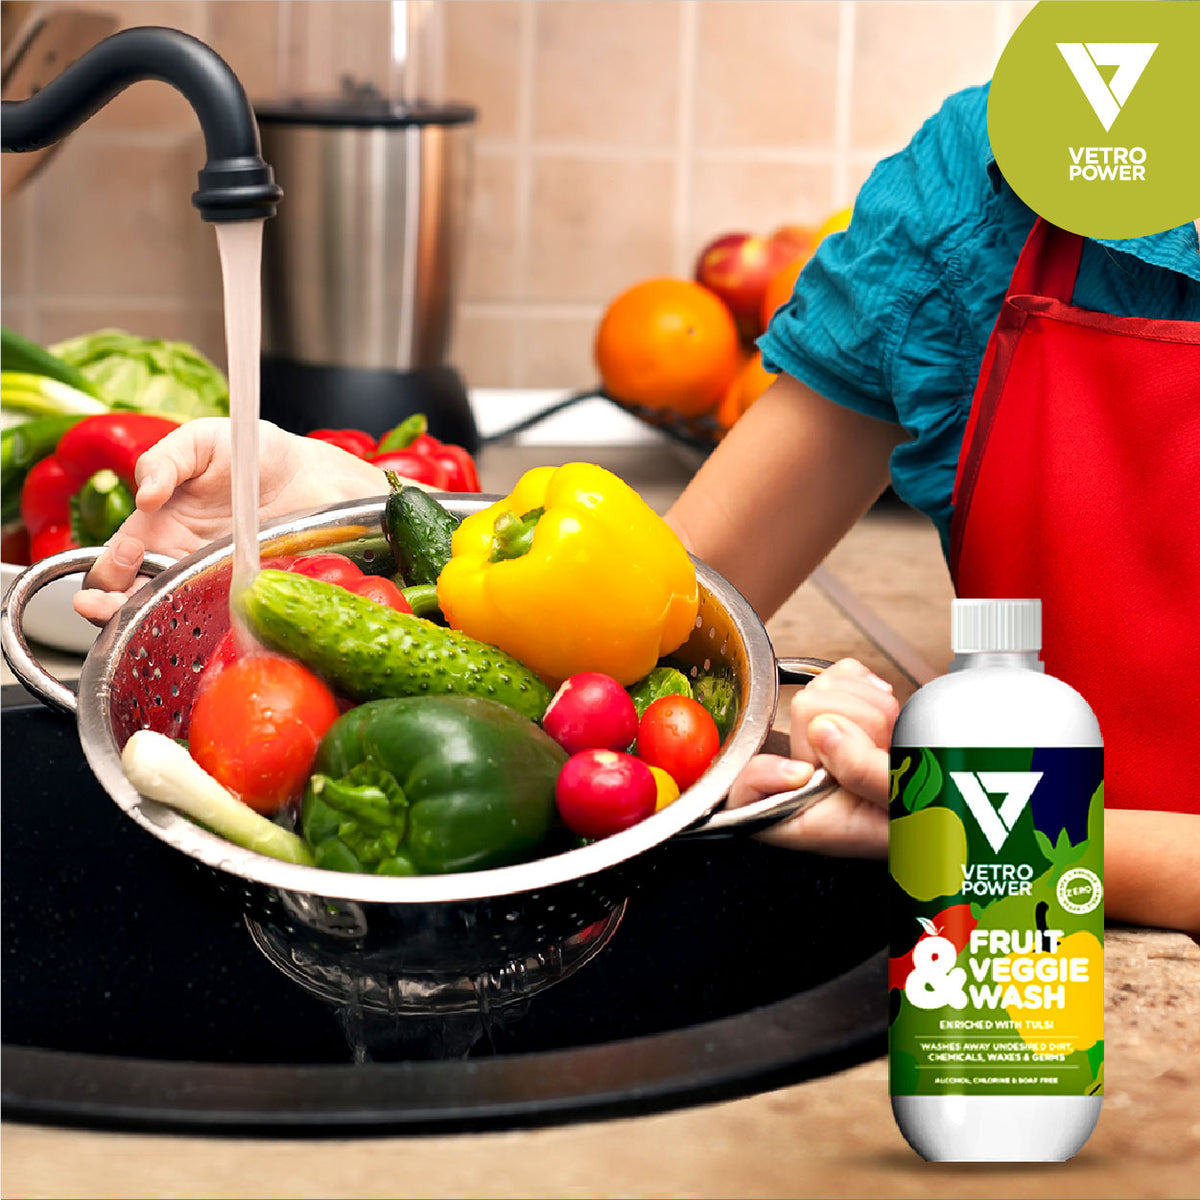 Vetro Power Fruit & Veggie Wash 500ml - Buy 1 Get 1 Hand Wipes (pack of 10) FREE